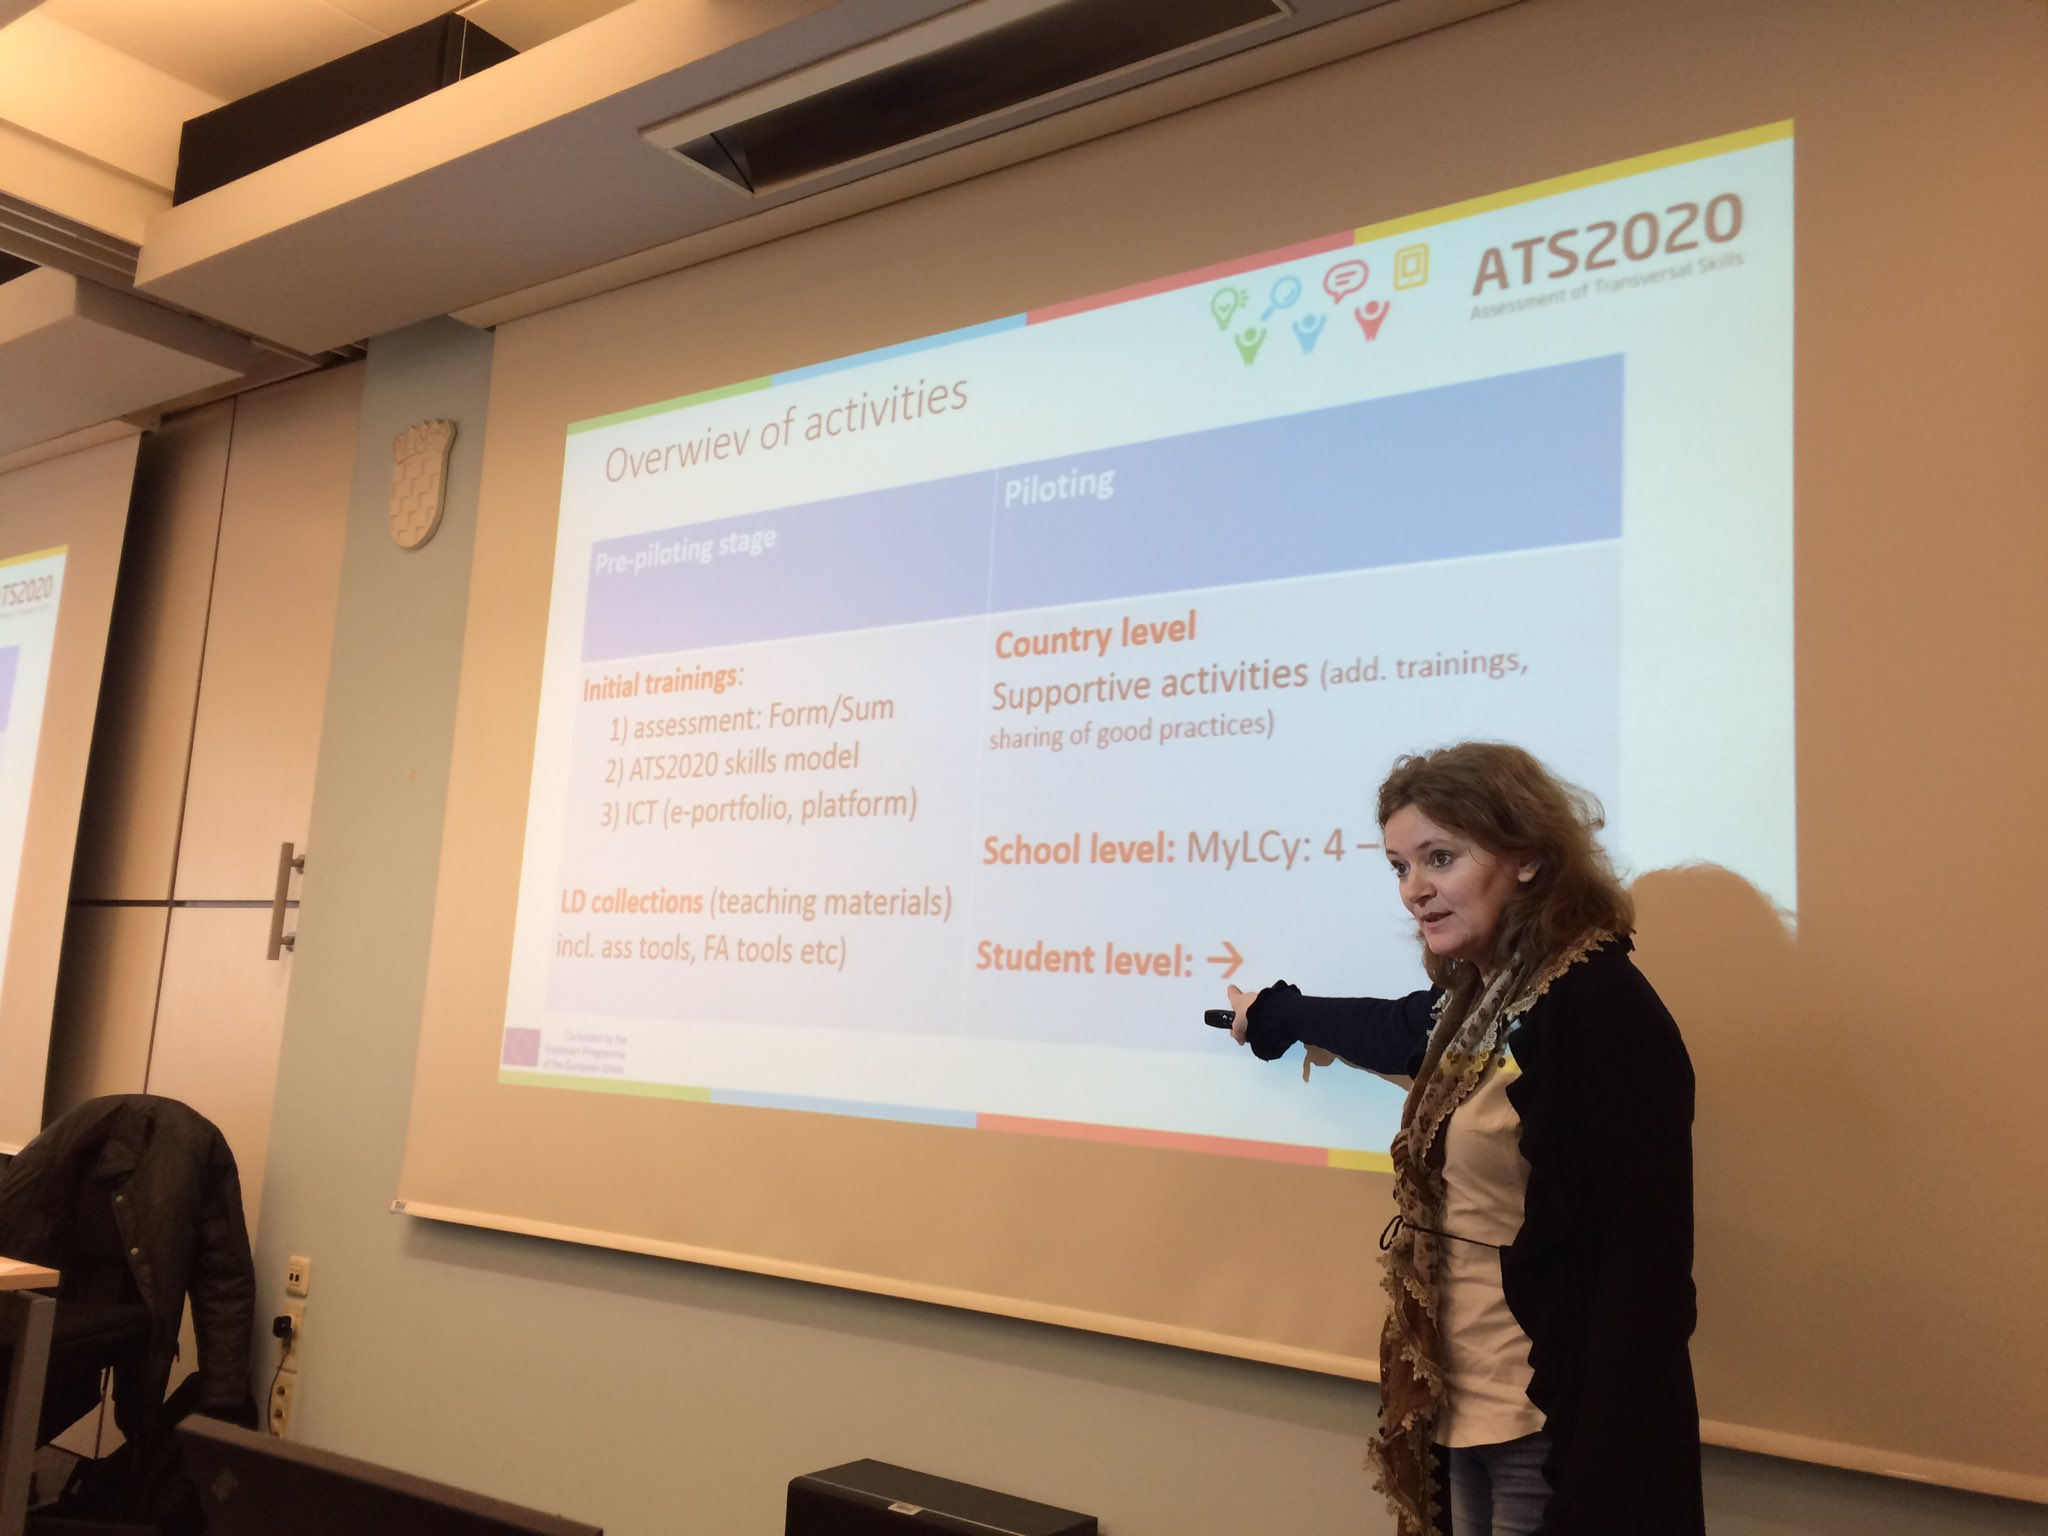 @tanjavec speaking about the #ats2020 in-school pilot implementation in the ten pilot countries https://t.co/vNwPYmJA7F